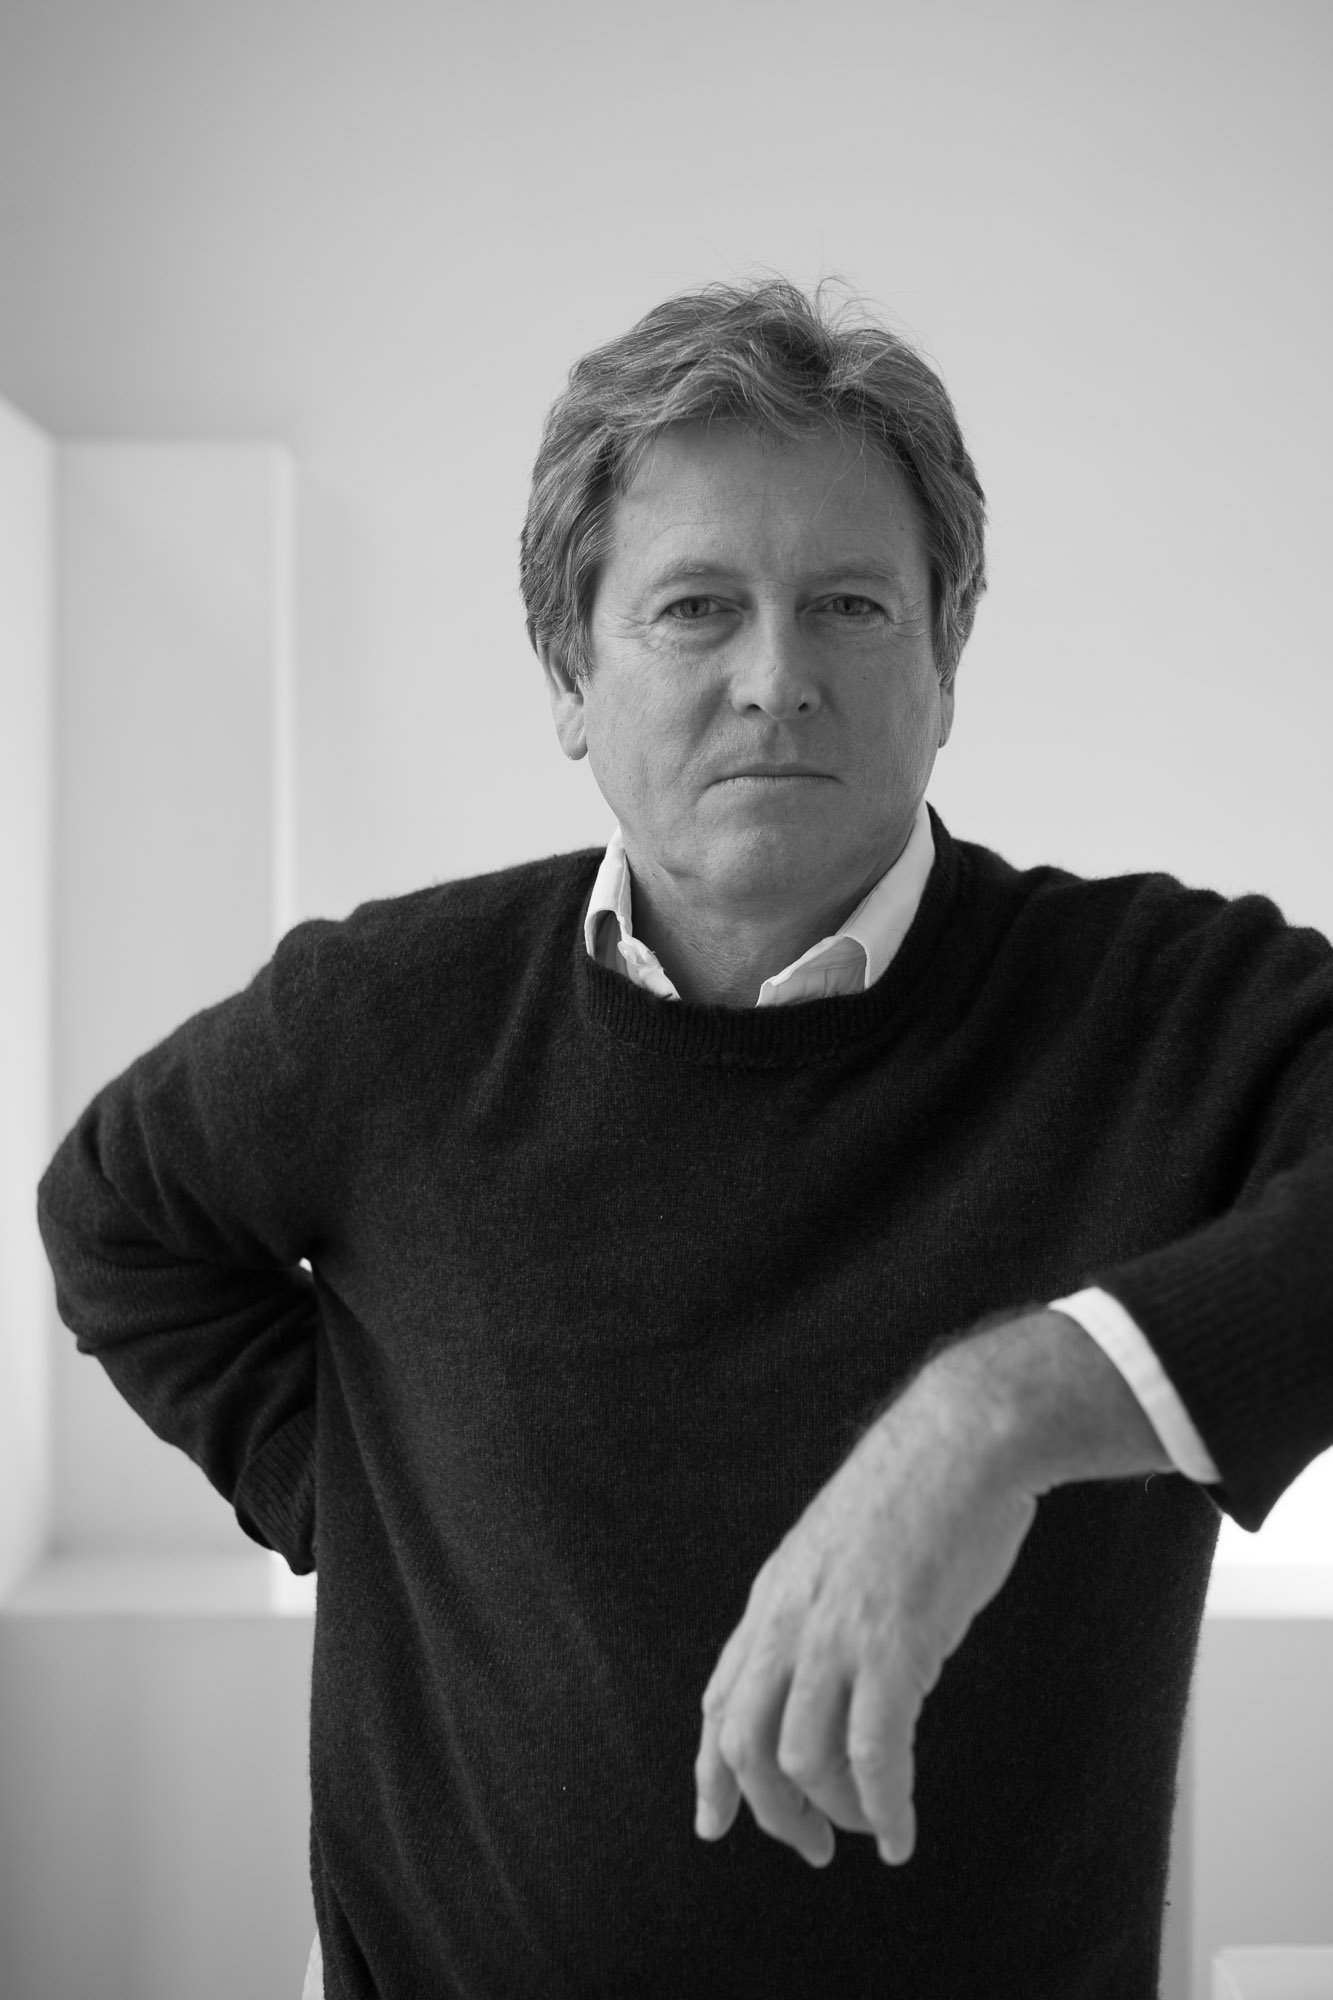 John Pawson, Architect